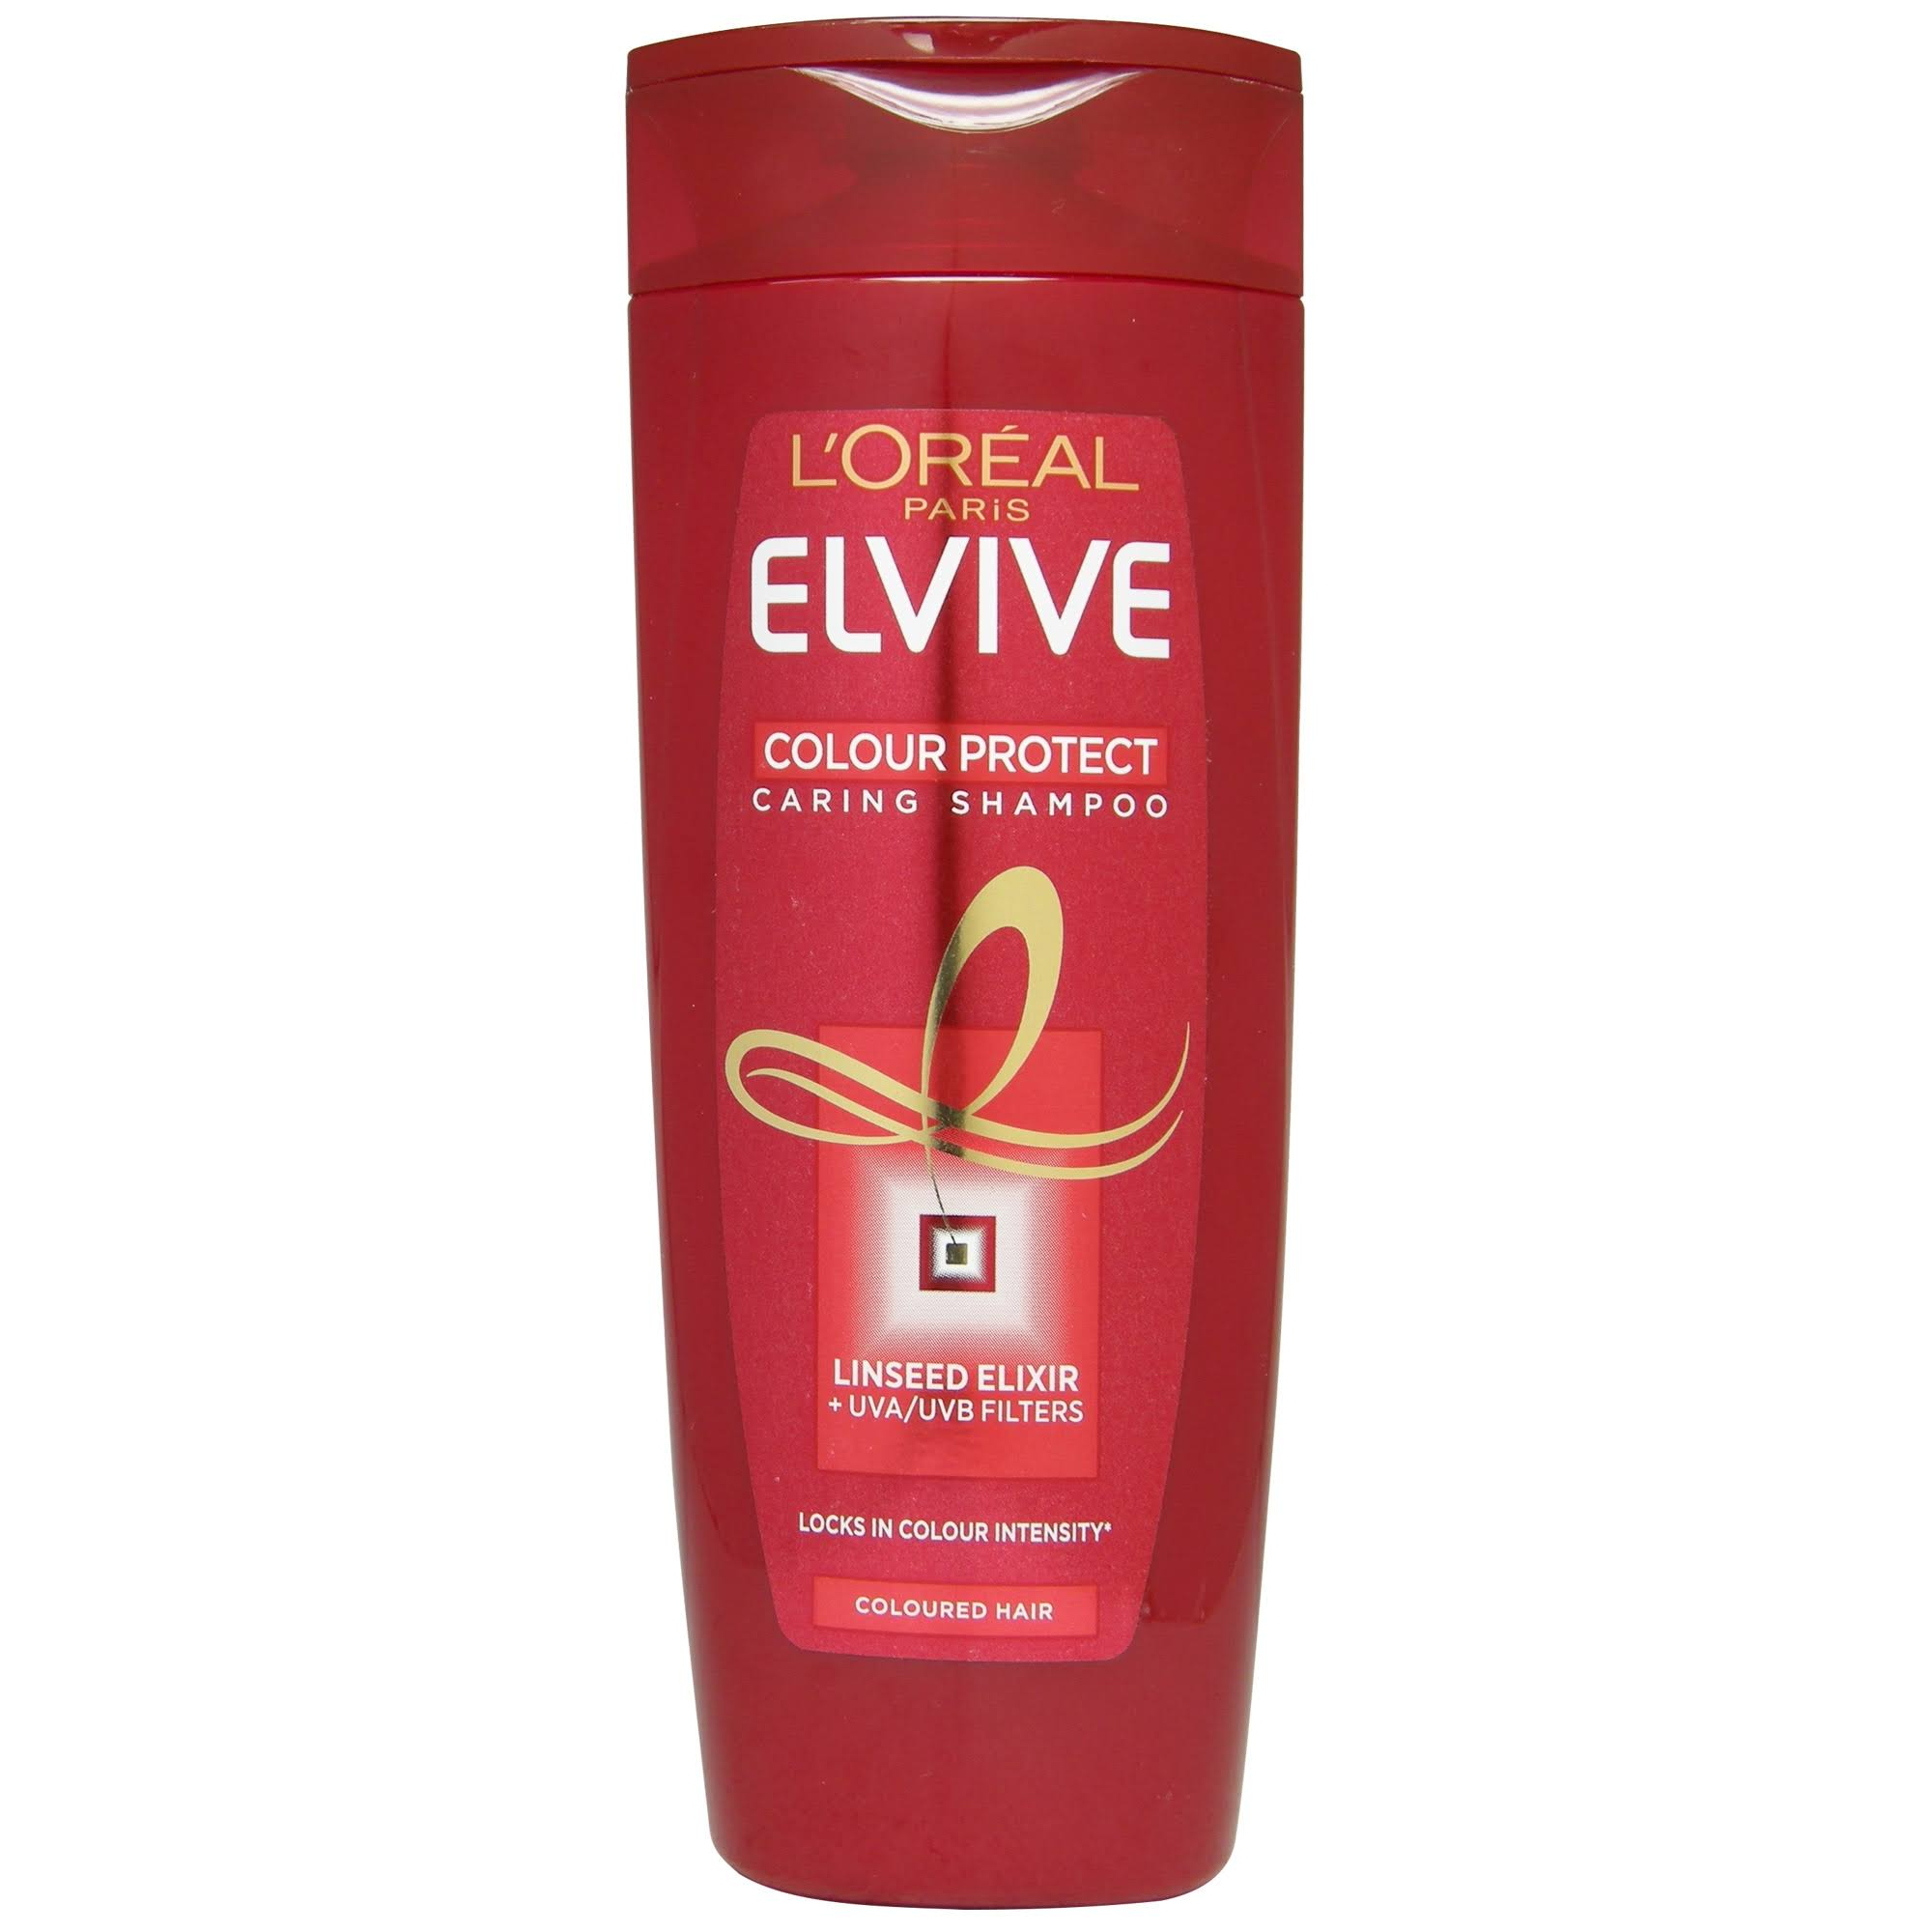 L'Oreal Elvive Colour Protect Shampoo 400ml